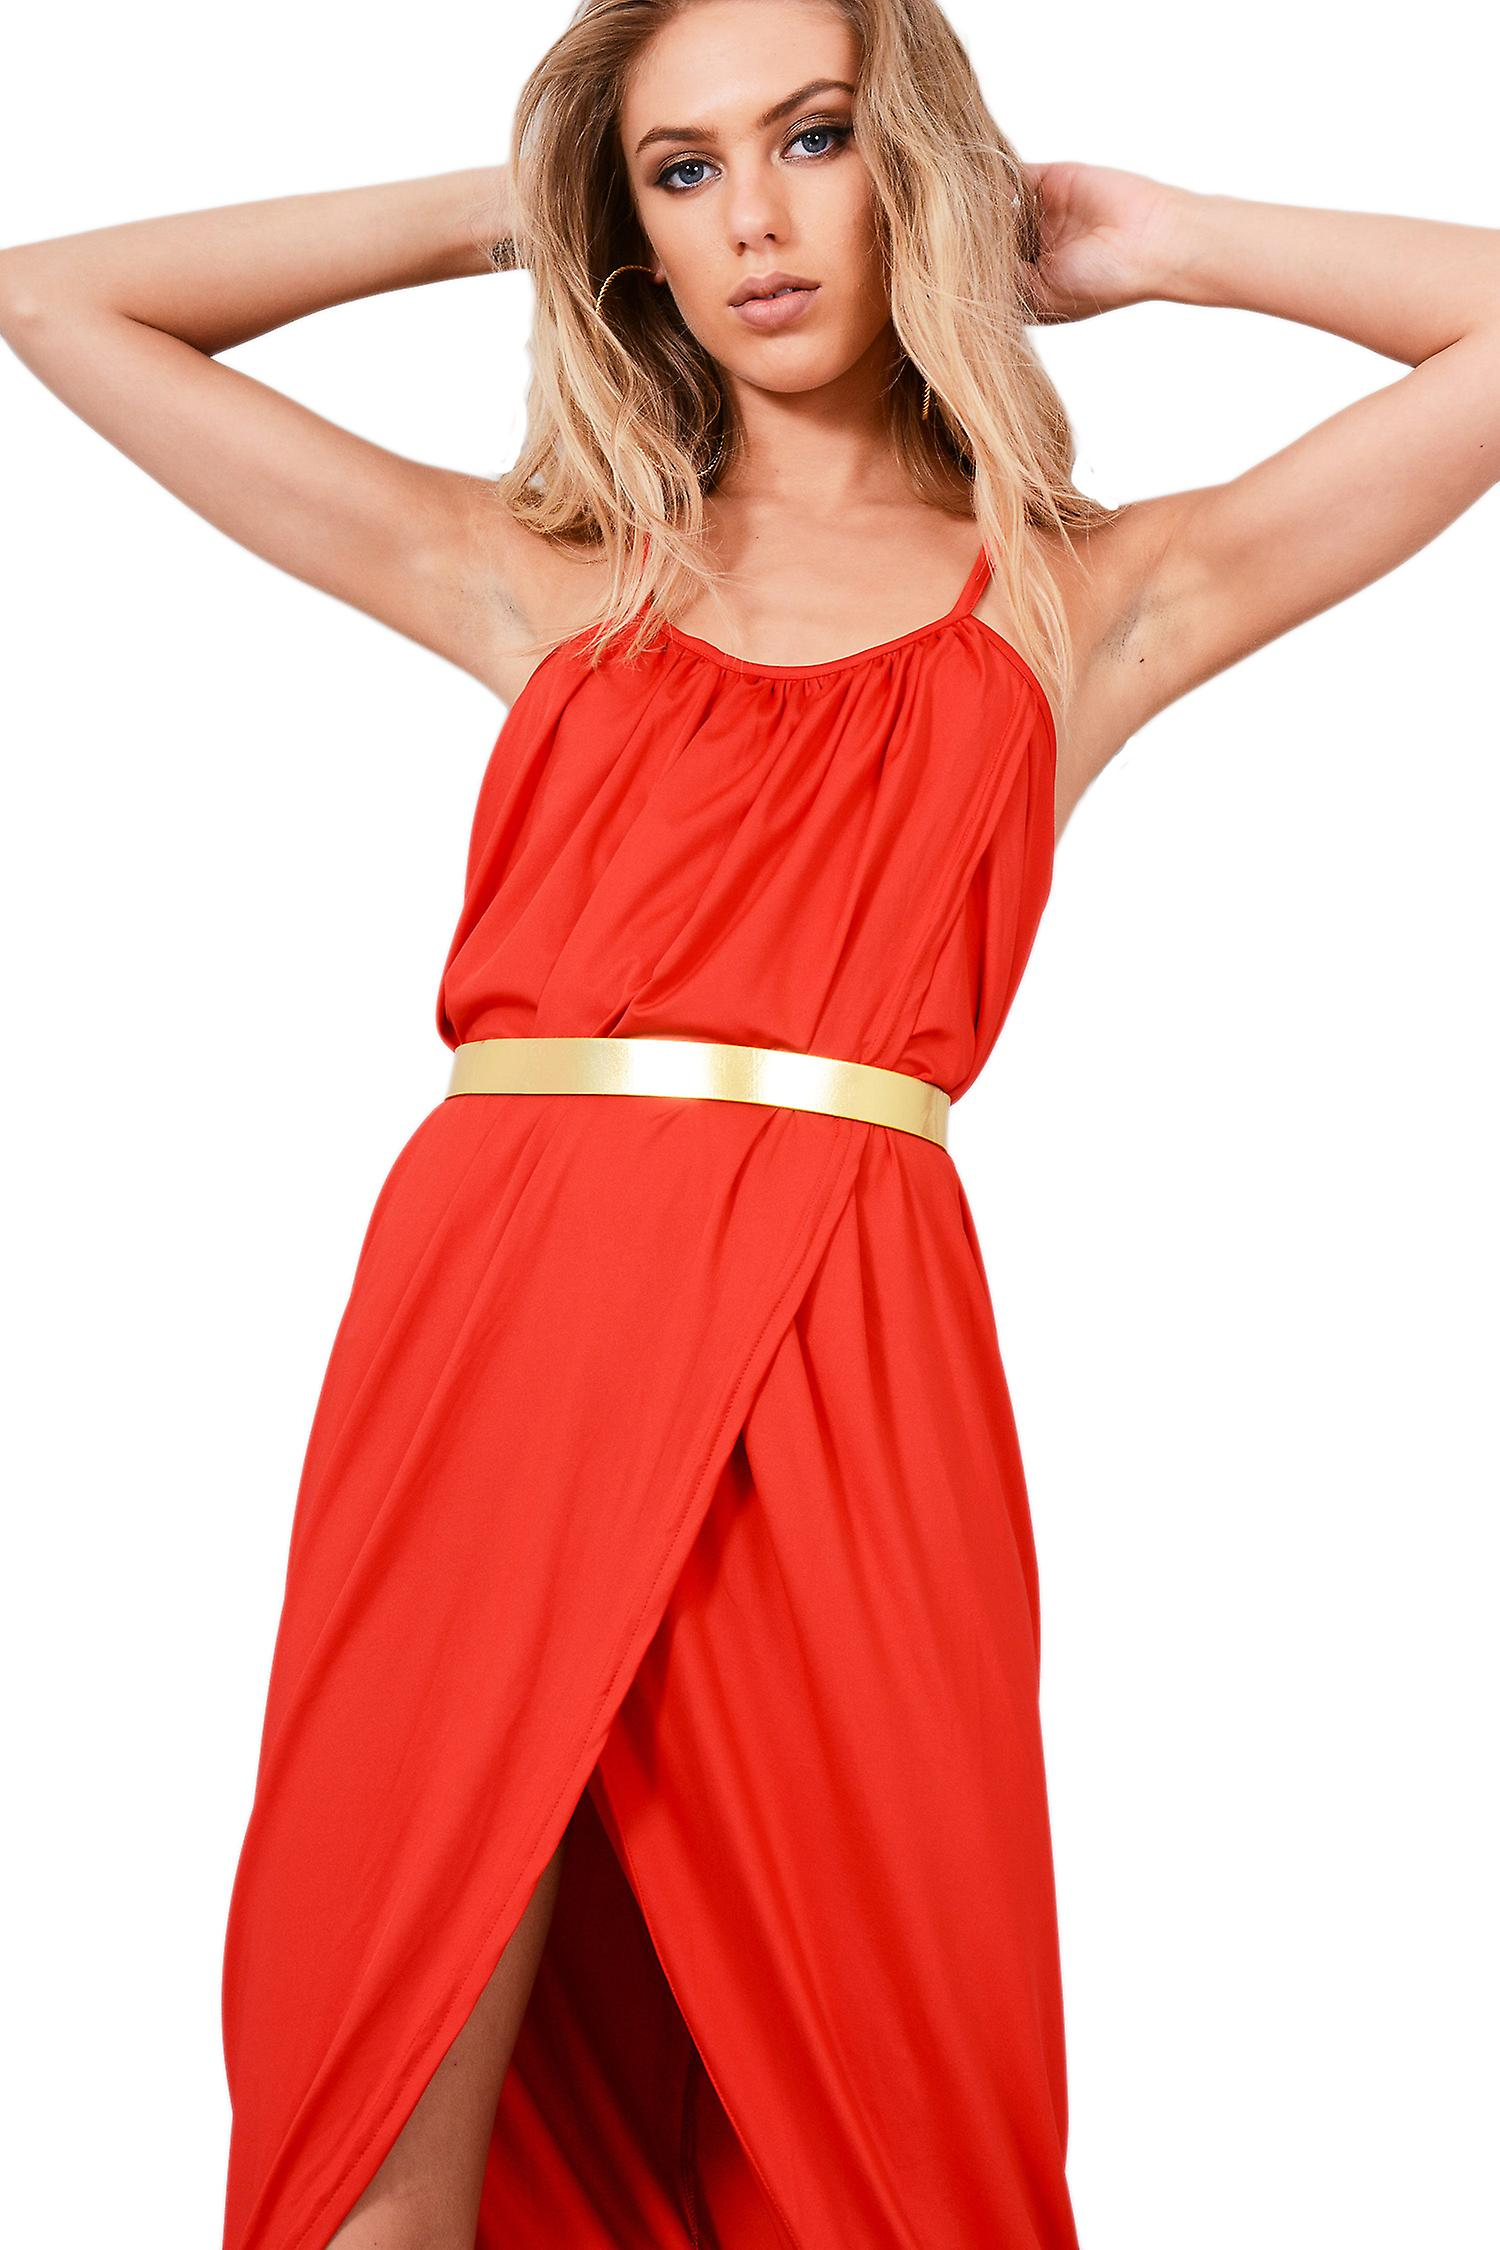 Lovemystyle Red Loose Fit Cami Wrap Dress With Gold Belt